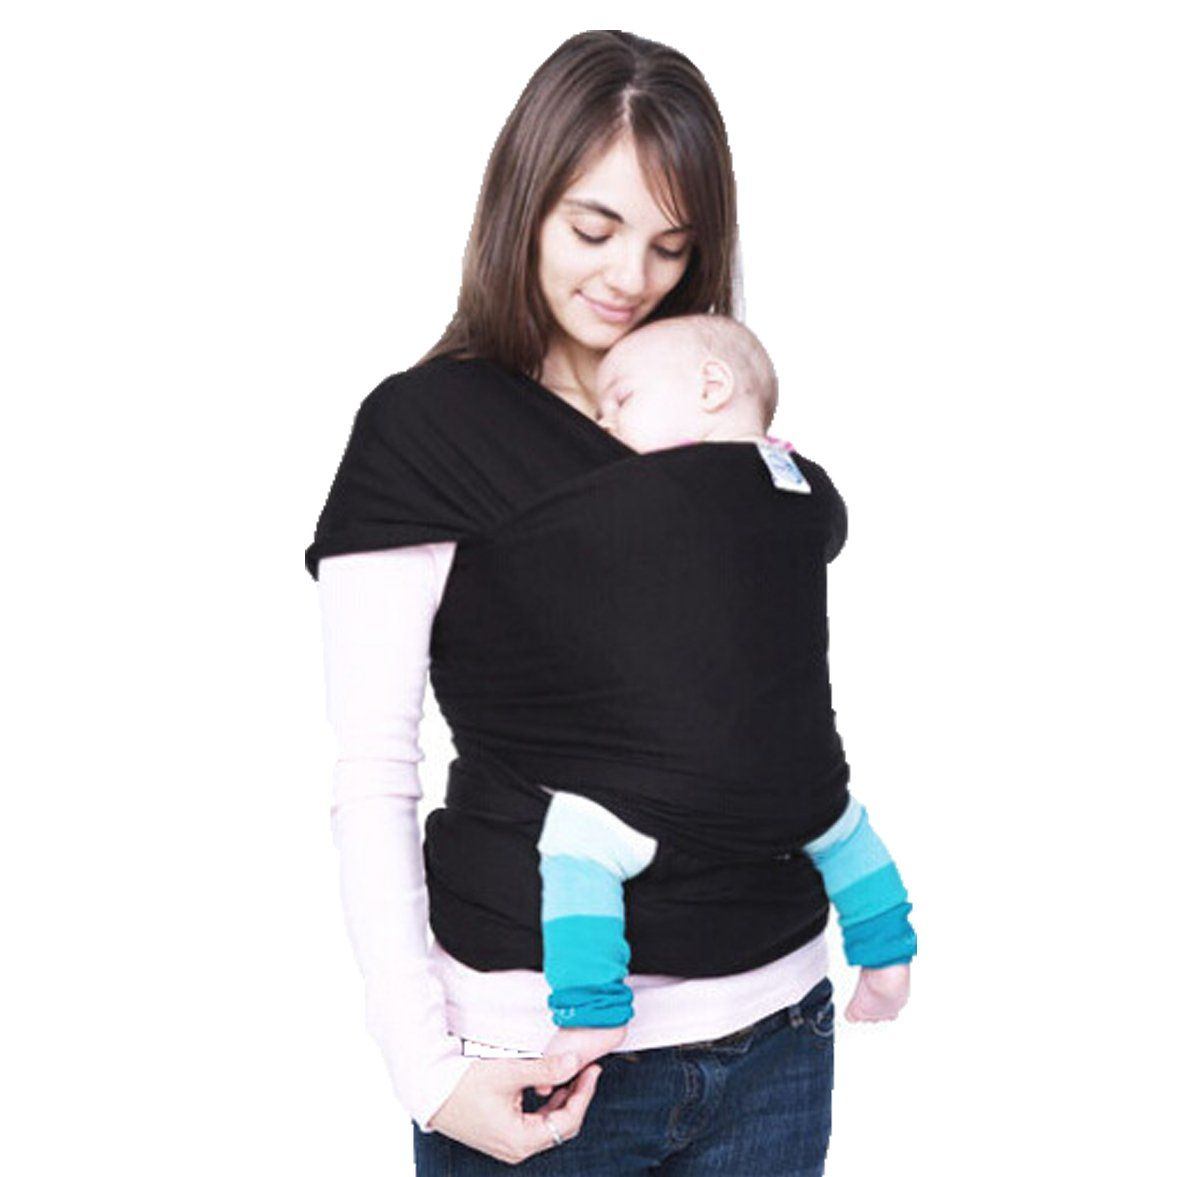 992331950ac Baby Wrap Carrier Marco Brothers Natural Cotton Baby Slings Multiple  Positions Soft and Lightweight Sling for